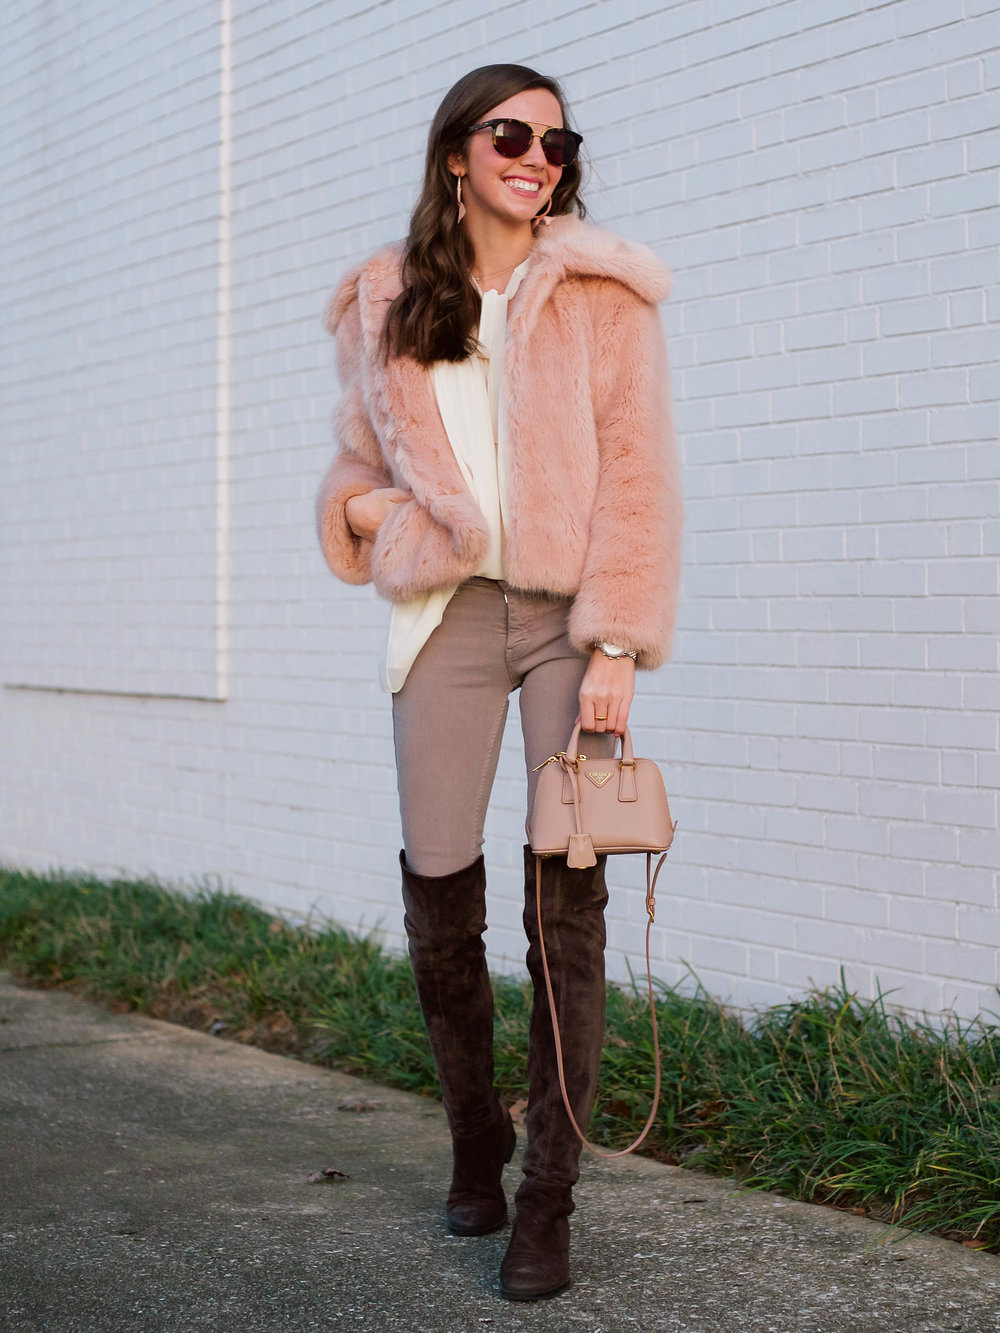 fashion blogger lcb style faux fur winter outfit (31 of 36).jpg